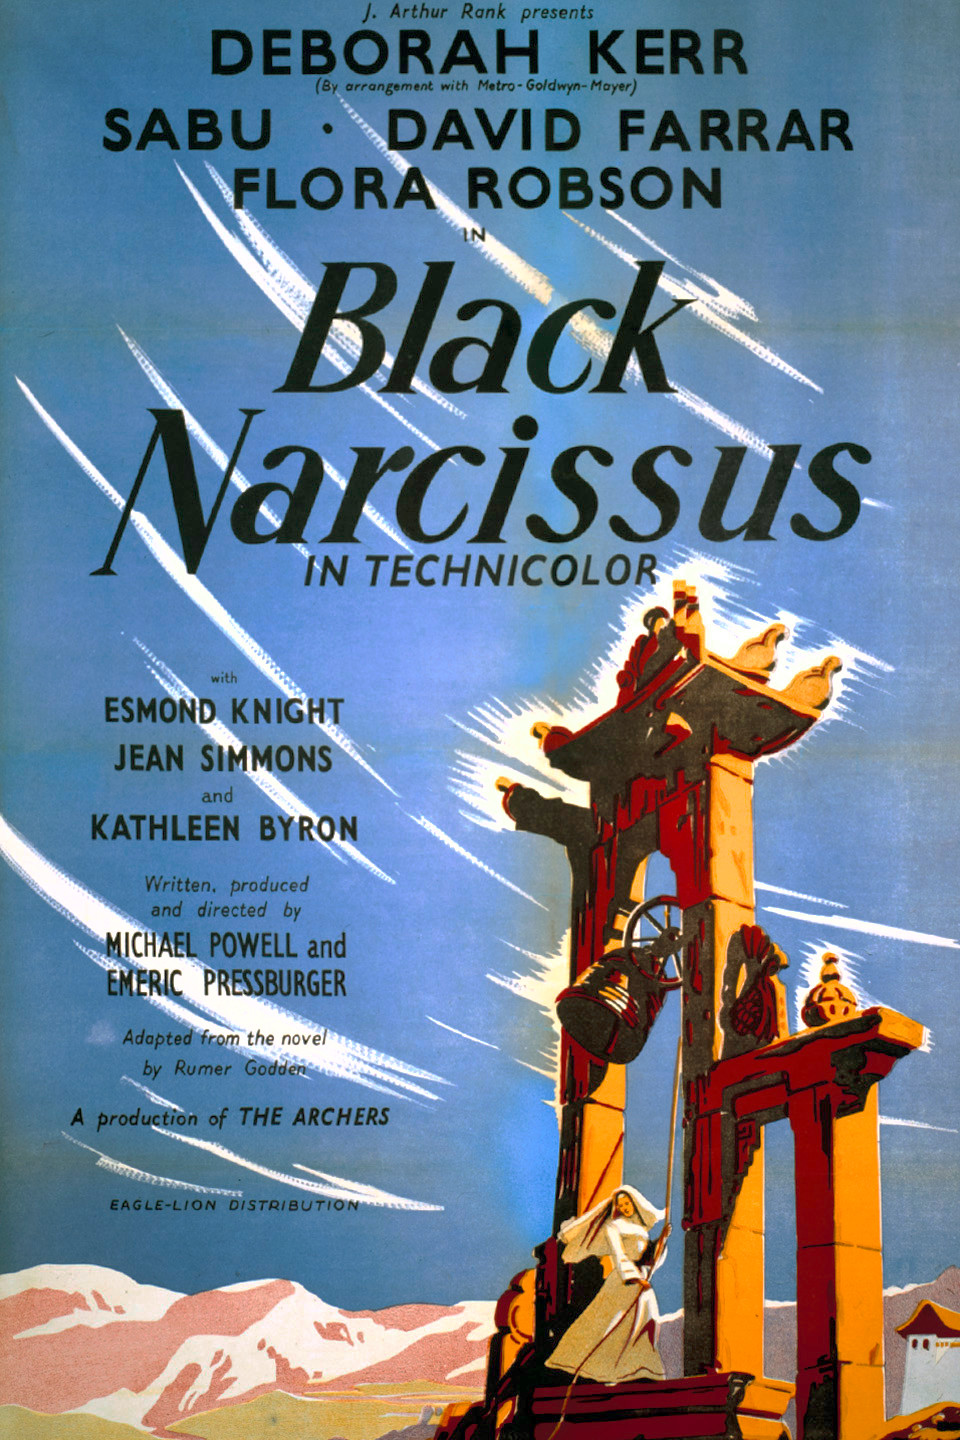 Black Narcissus (1947) - Directed by: Michael Powell, Emeric PressburgerStarring: Deborah Kerr, David Farrar, Kathleen Byron, Jenny Laird, May HallatRated: NR (Suggested PG for Some Thematic Elements)Running Time: 1 h 41 mTMM Score: 4.5 stars out of 5STRENGTHS: Cinematography, Production Design, WritingWEAKNESSES: Mild Moments of Melodrama, May Hallatt